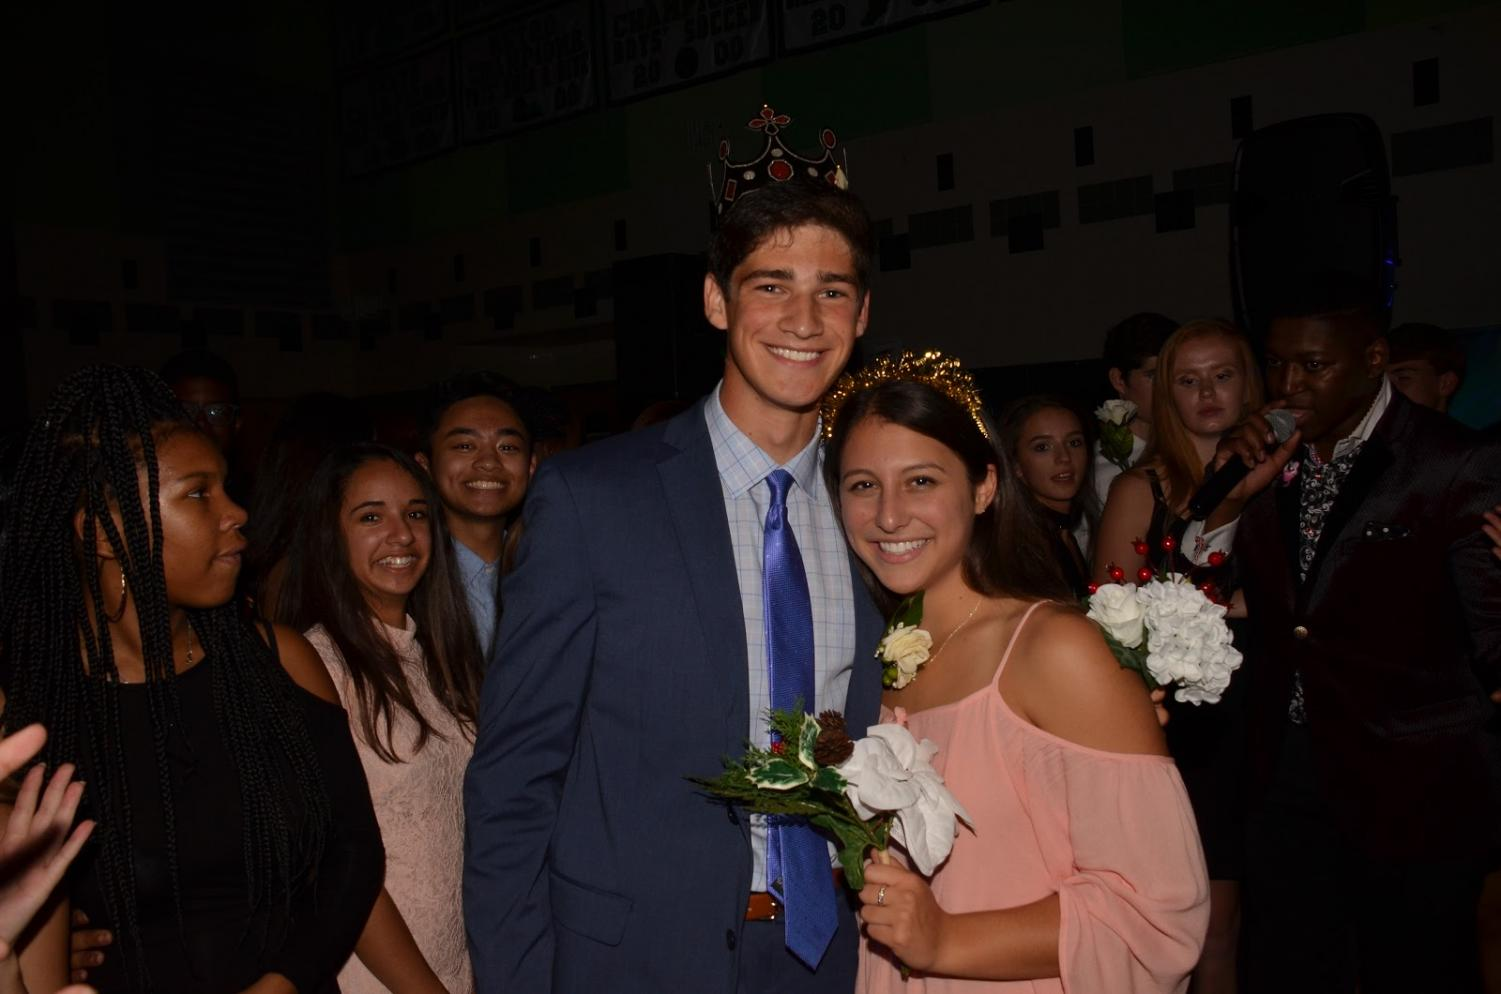 Homecoming courts from 2017-18 (Jake Steinberg Haley Karr) and 2016-17 (Michael Blakeslee and Jane Markey) years previous have always been heterosexual couples. Leadership hopes to give this opportunity to any couple regardless of gender this year.